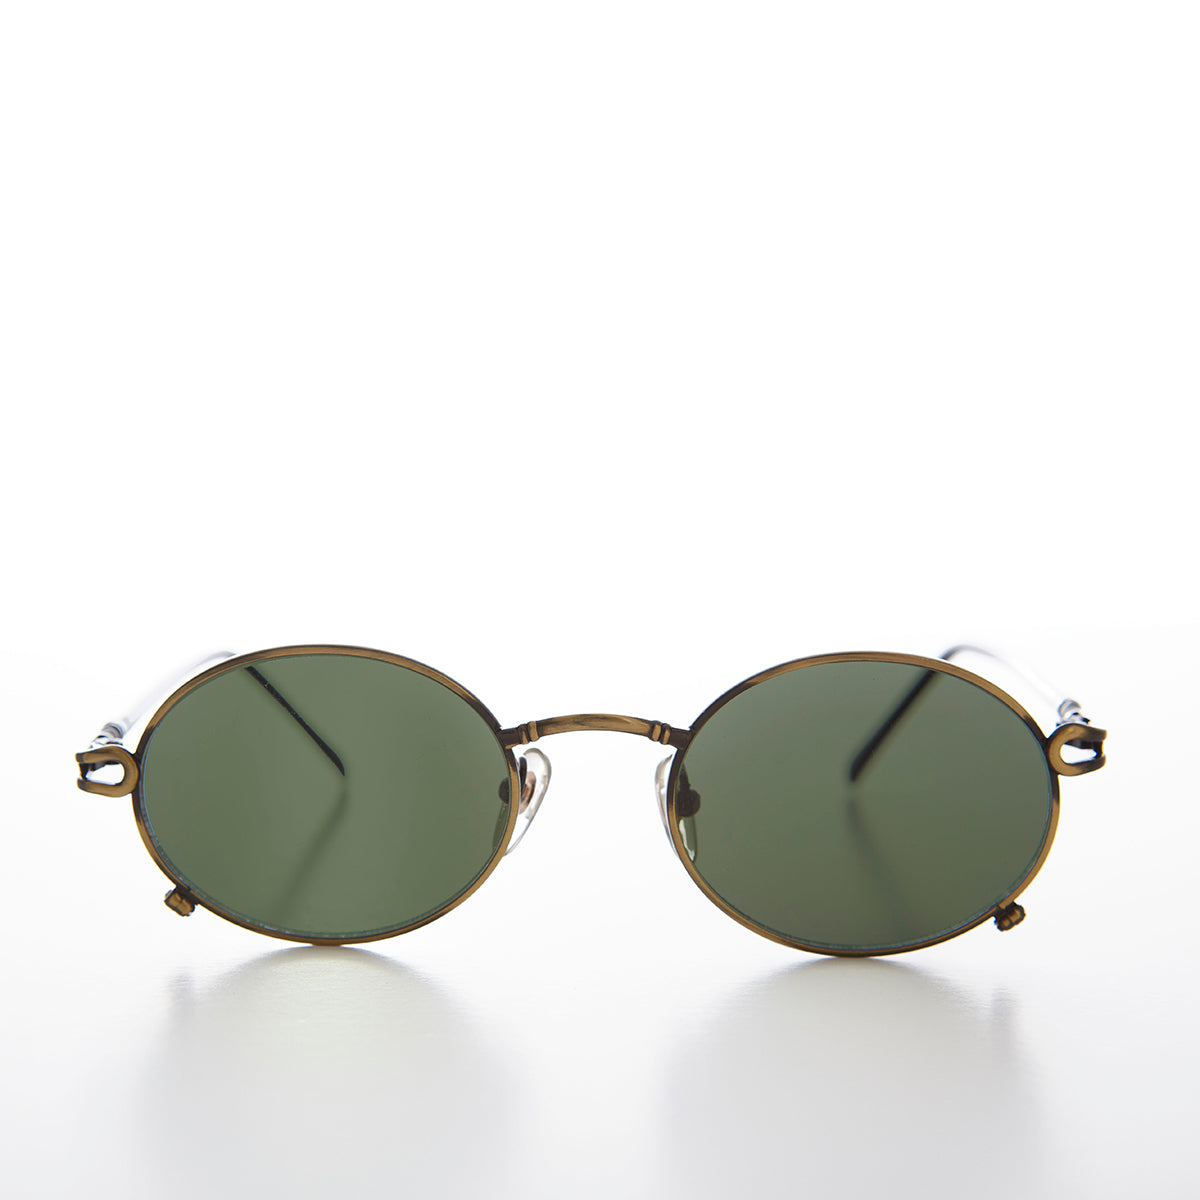 Small Oval Combination Hip Hop Vintage Sunglasses -  Angel